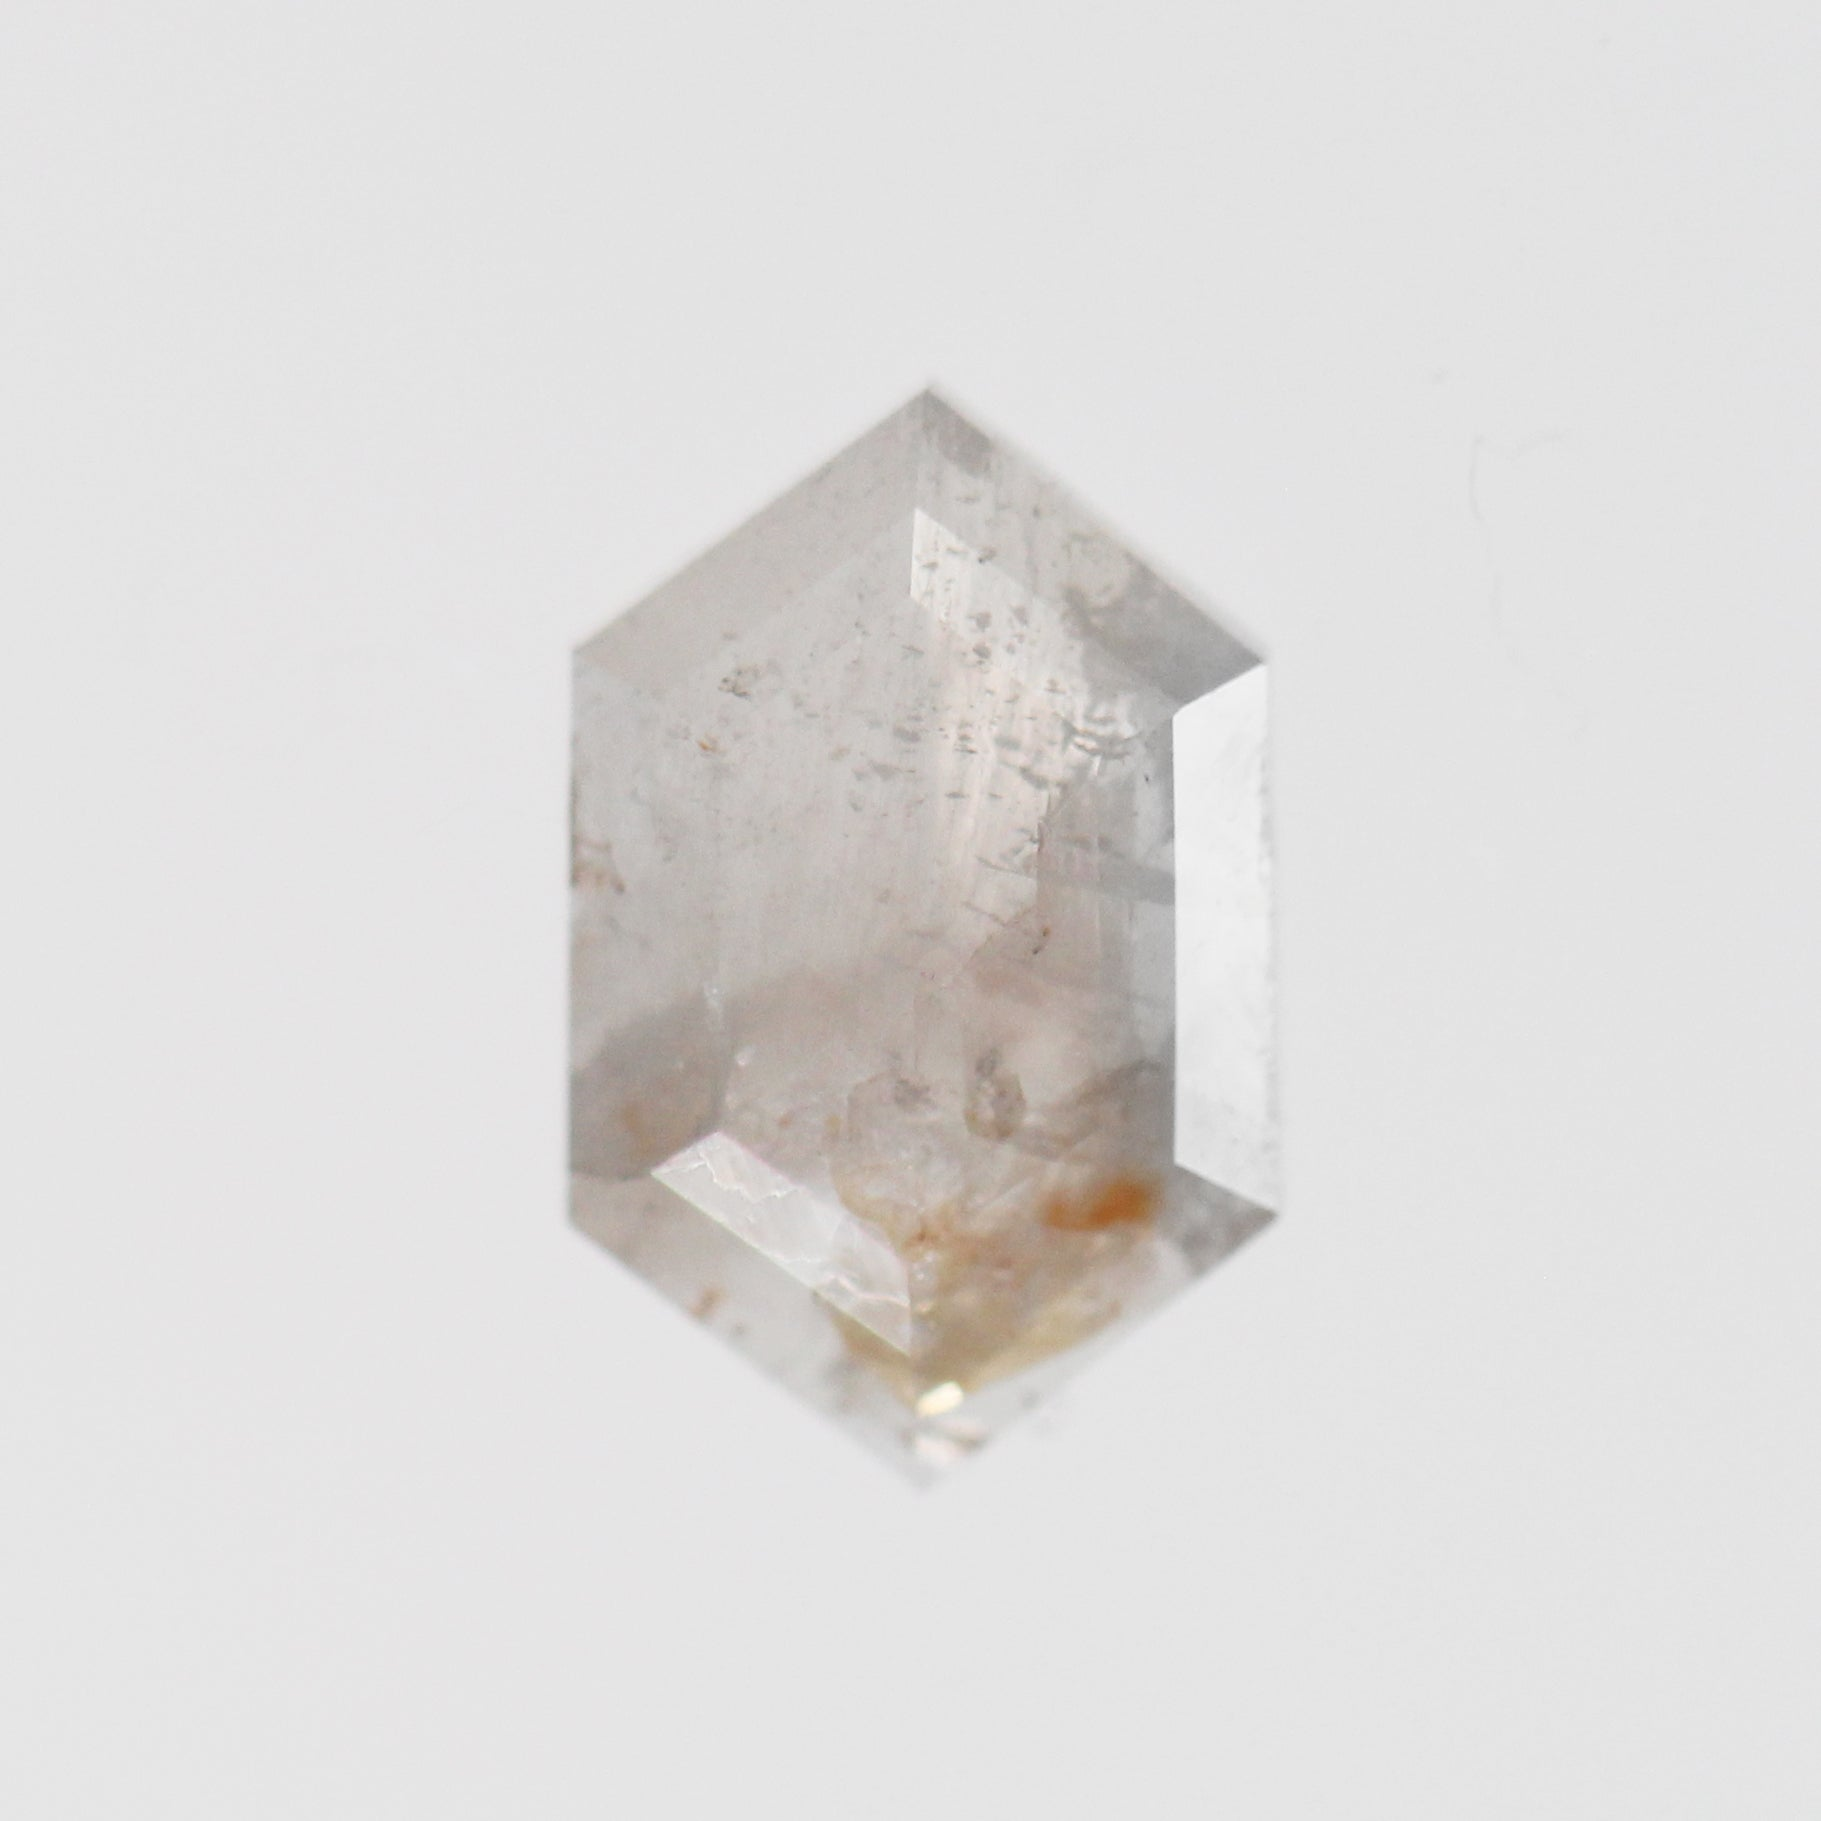 1.14 Carat Hexagon Celestial Diamond for Custom Work- Inventory Code HRW114 - MW - Celestial Diamonds ® by Midwinter Co.